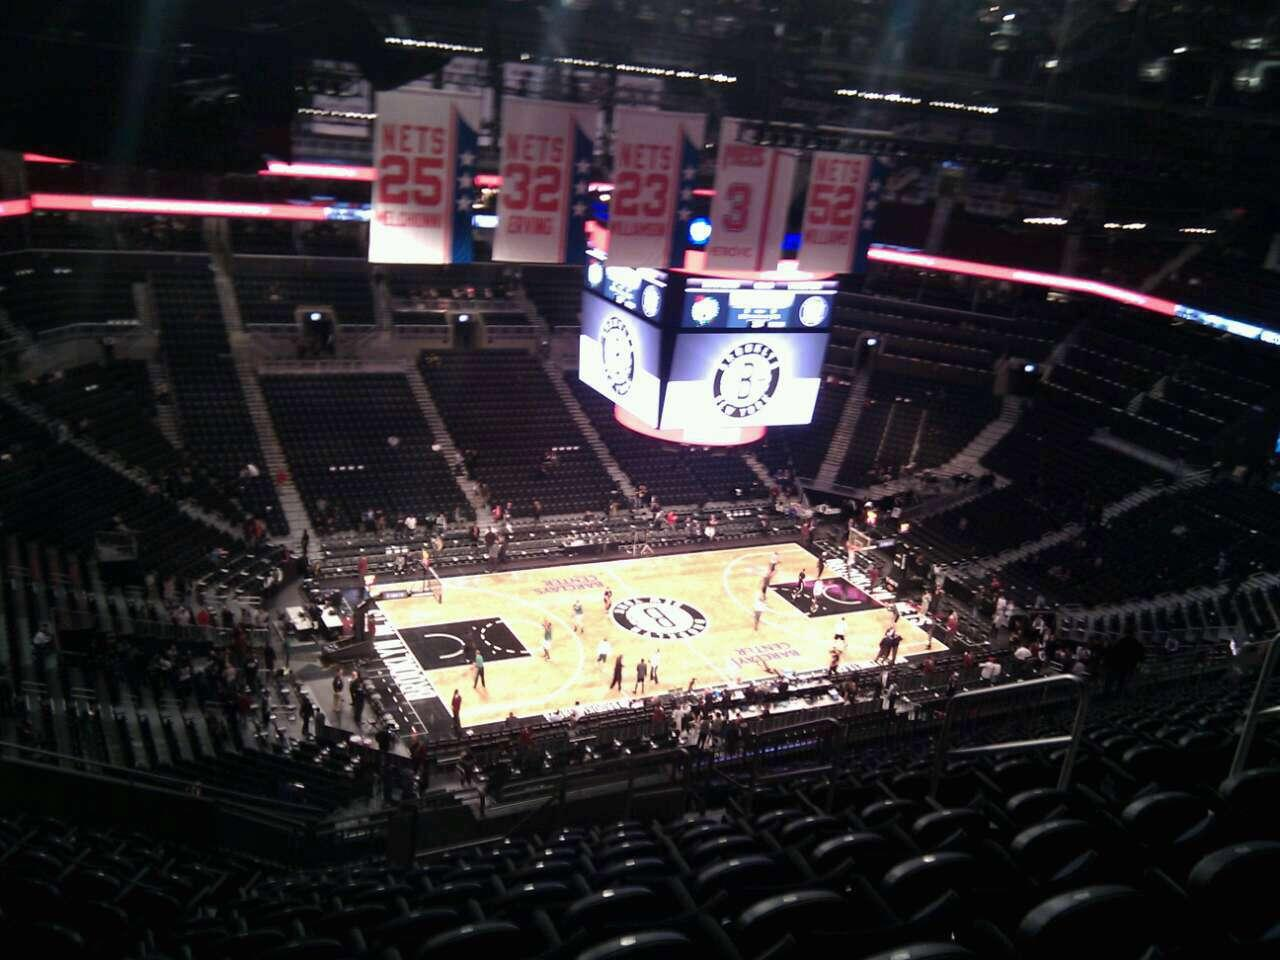 Barclays Center Section 211 Row 17 Seat 9